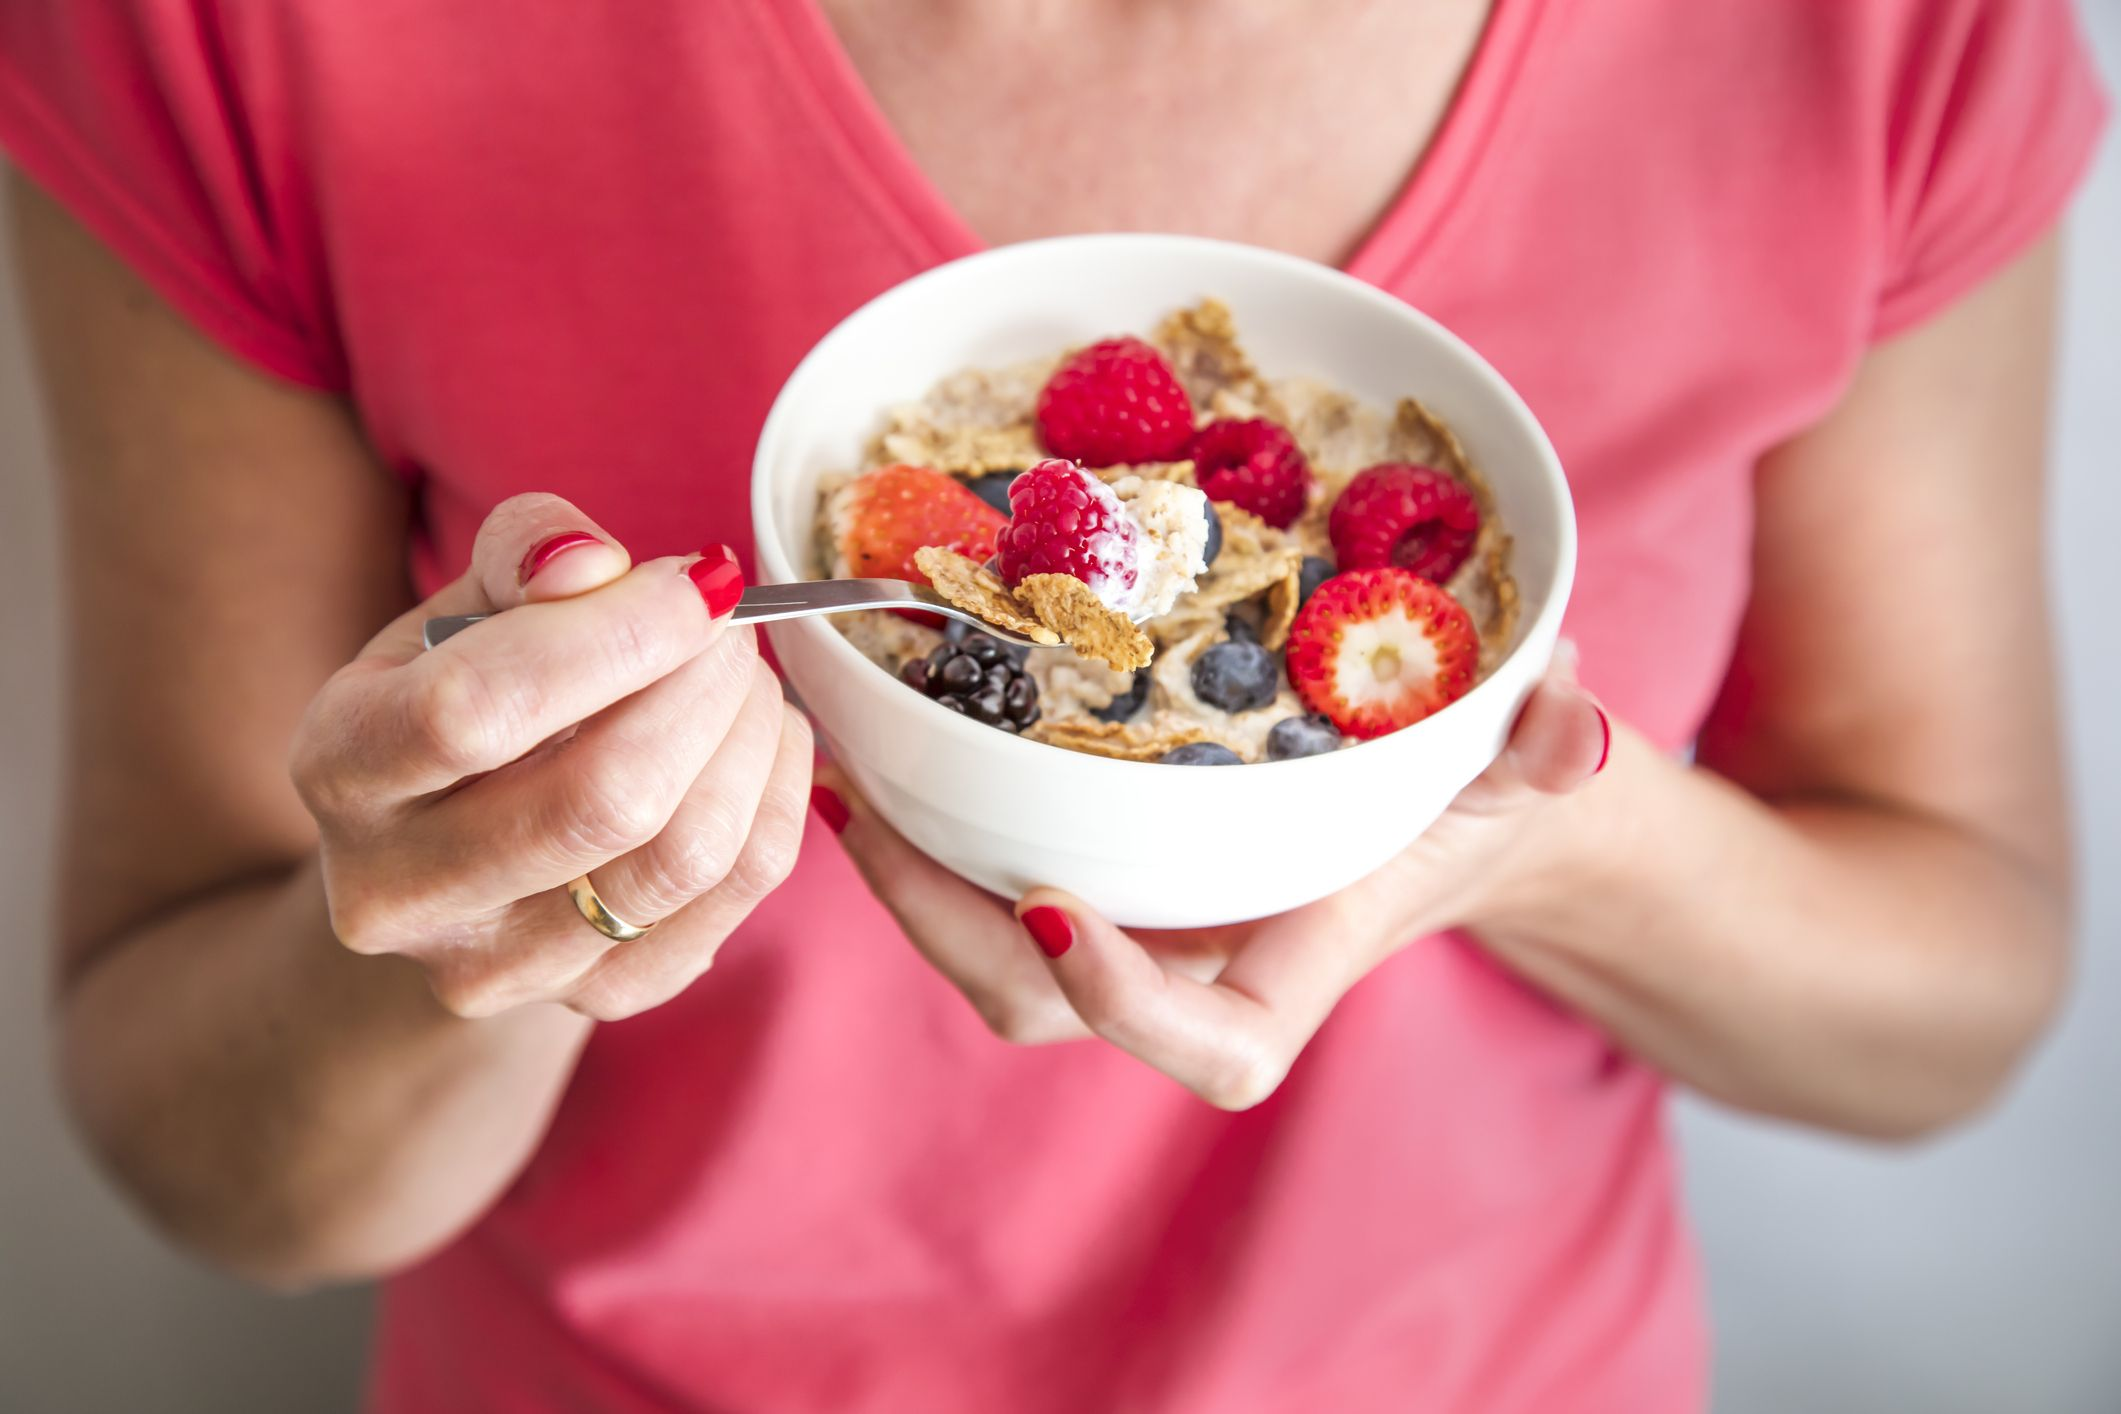 What Happens If You Eat Too Much Fiber? A Doctor Weighs In